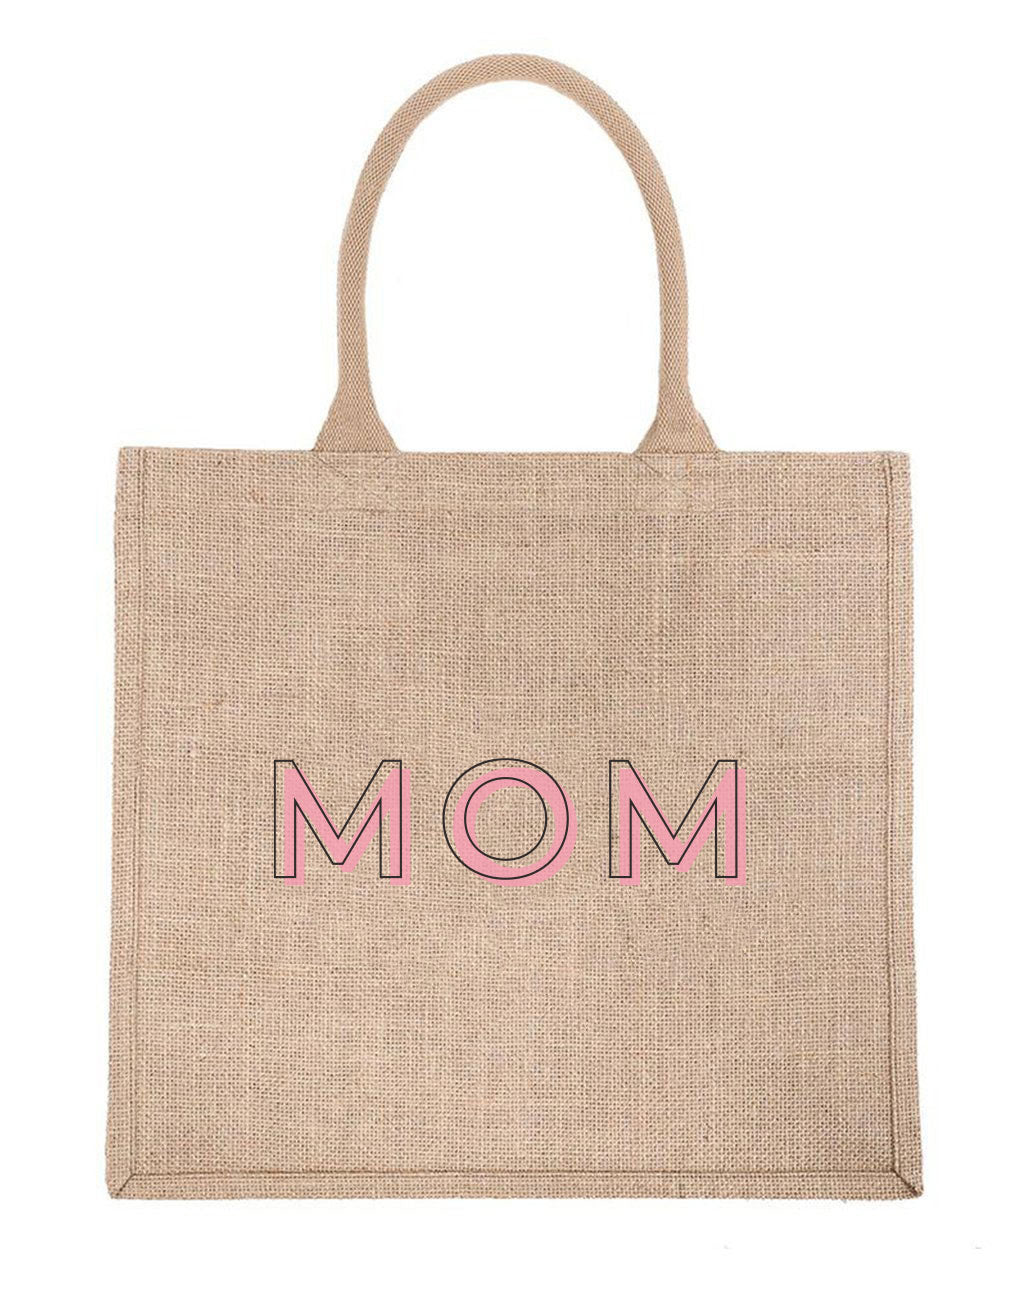 Shopping Tote - Mom | The Little Market